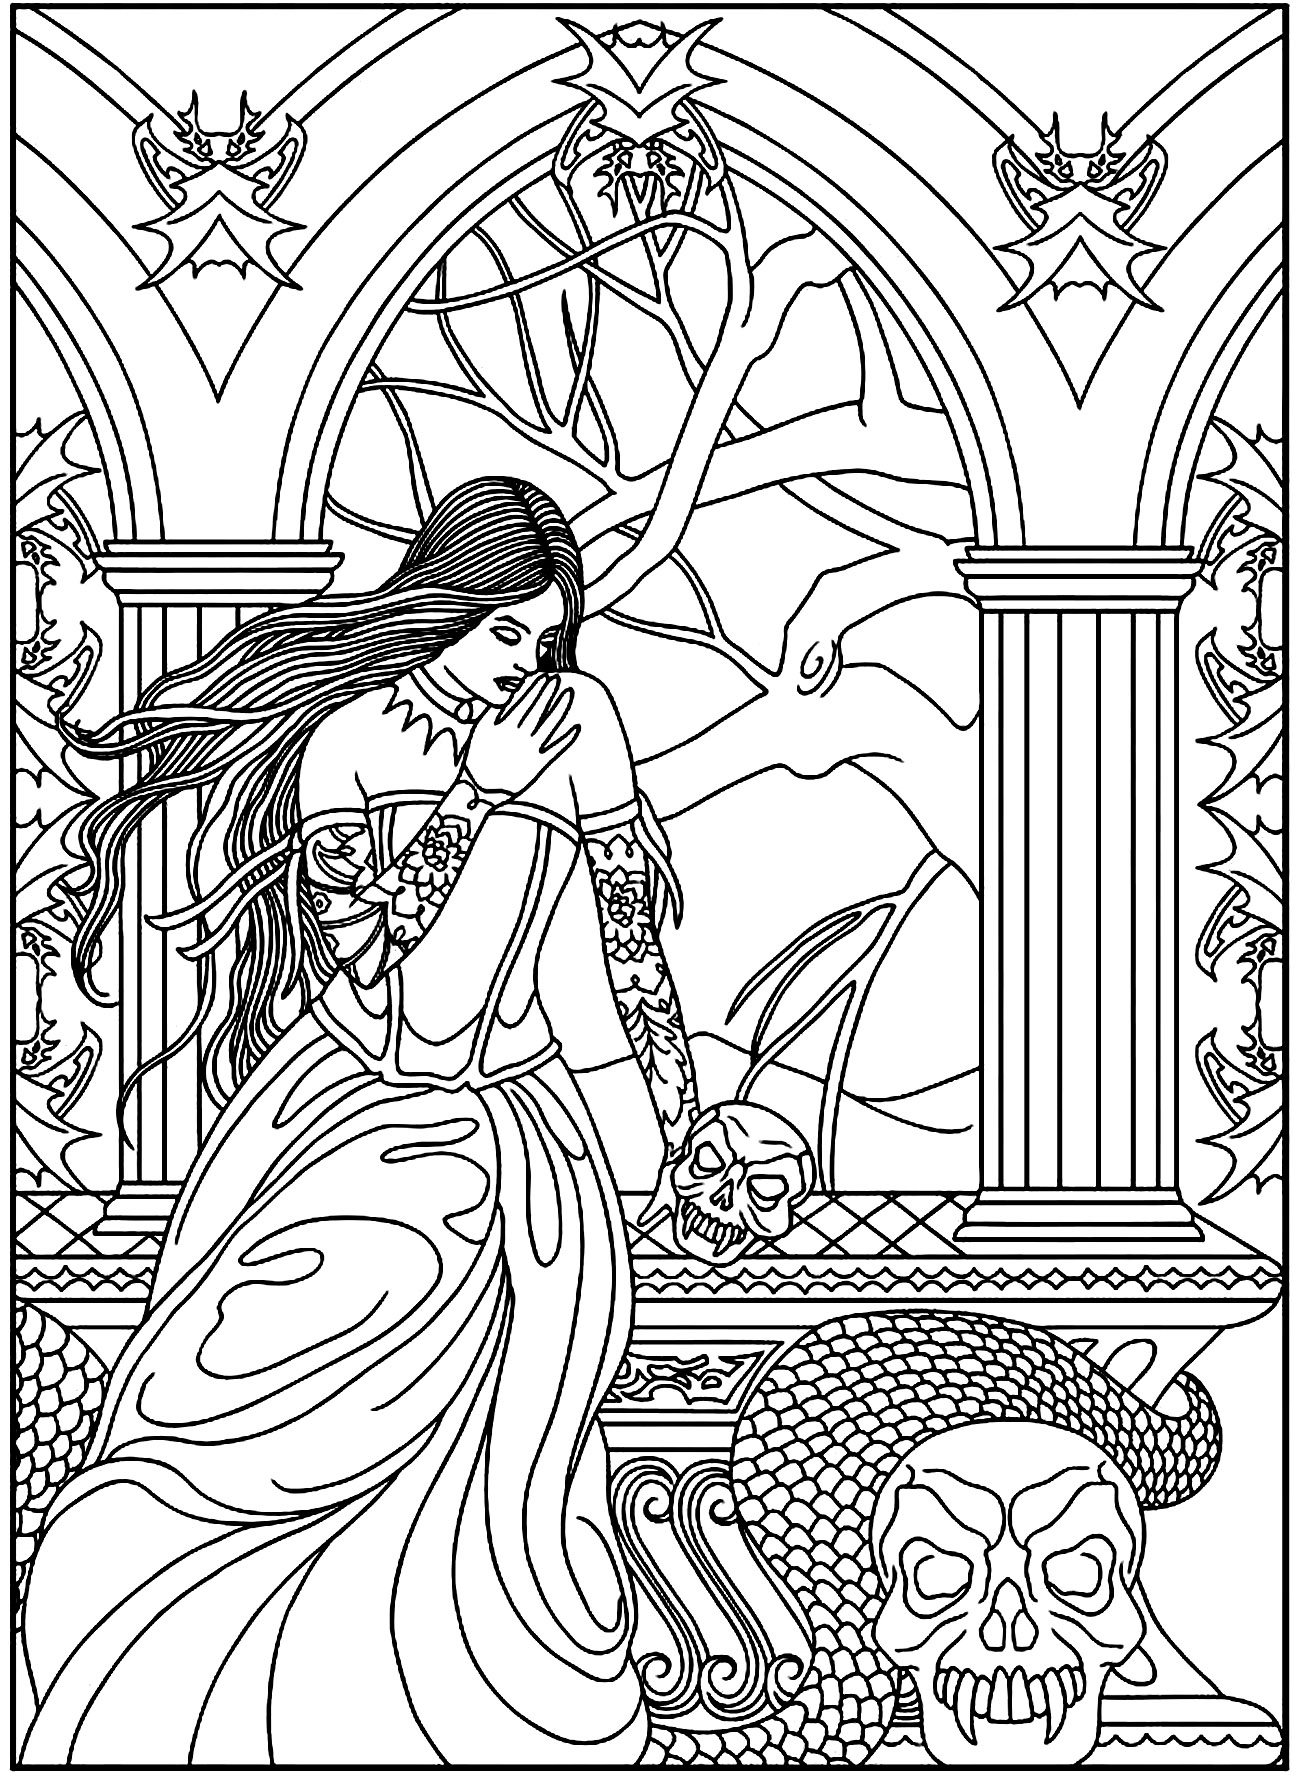 Fantasy woman skulls snake Myths legends Coloring pages for adults